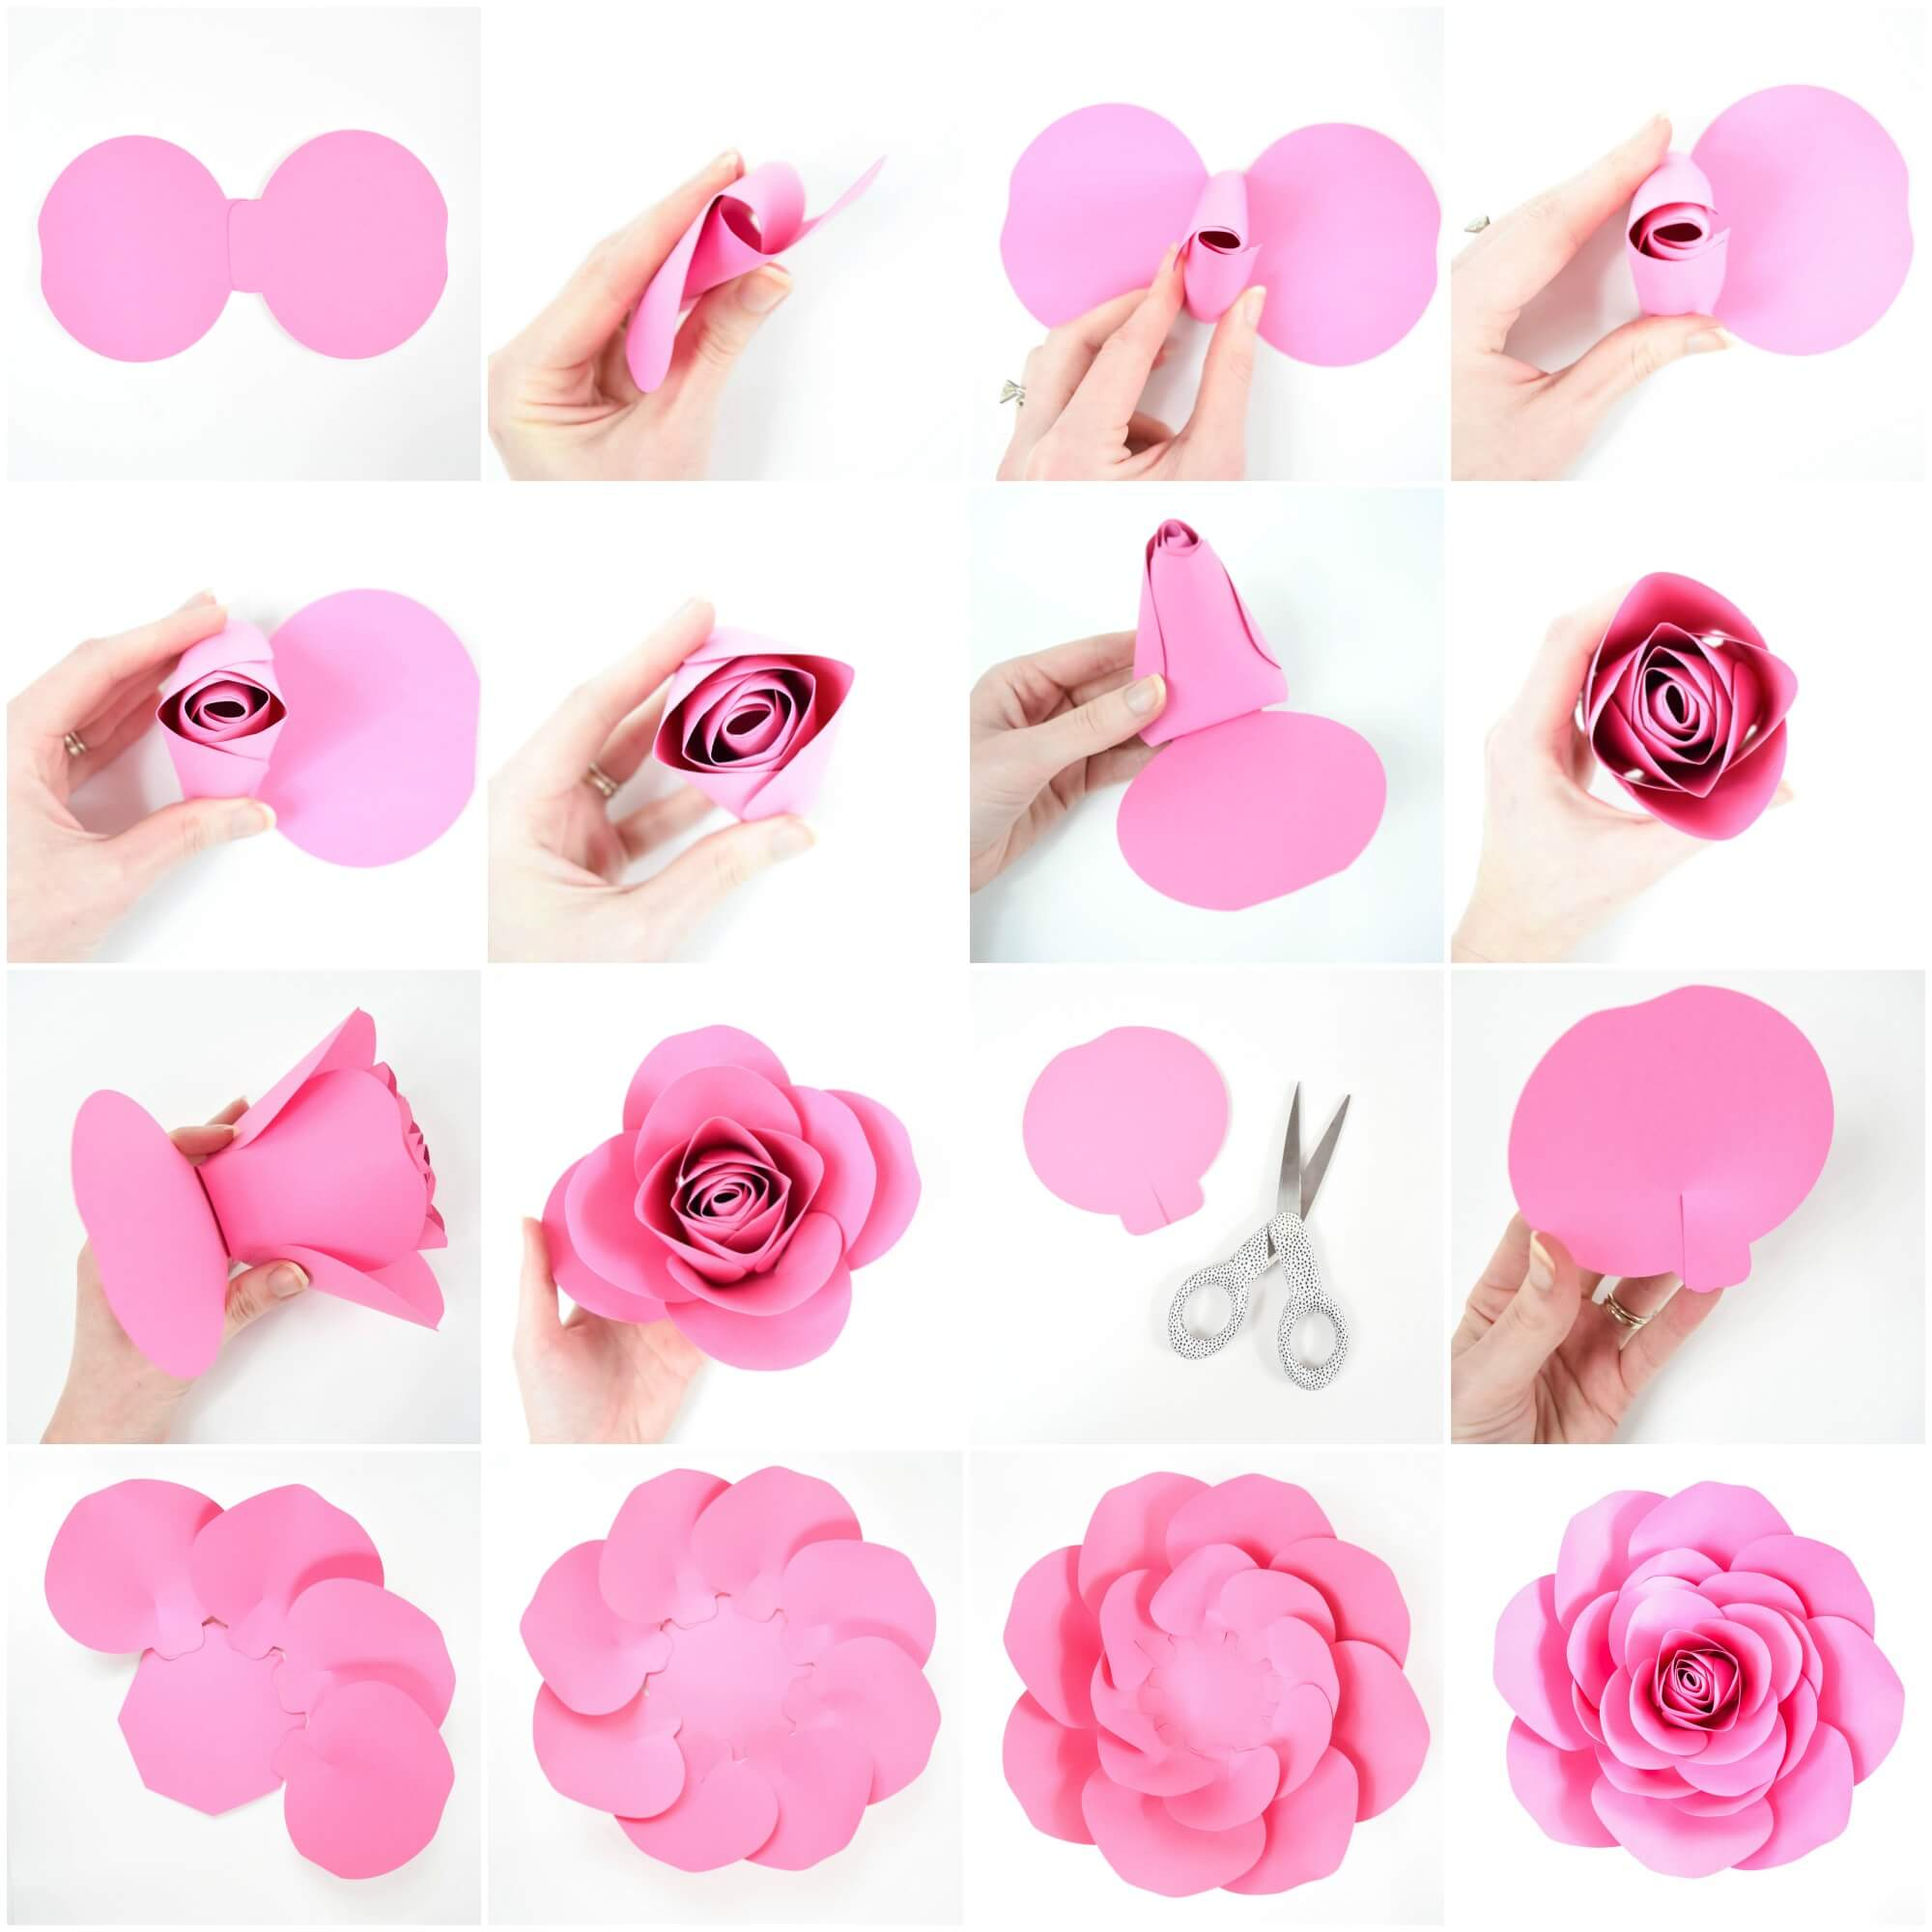 photo about Printable Paper Flower Template identified as Free of charge Heavy Paper Rose Template: Do-it-yourself Camellia Rose Guideline